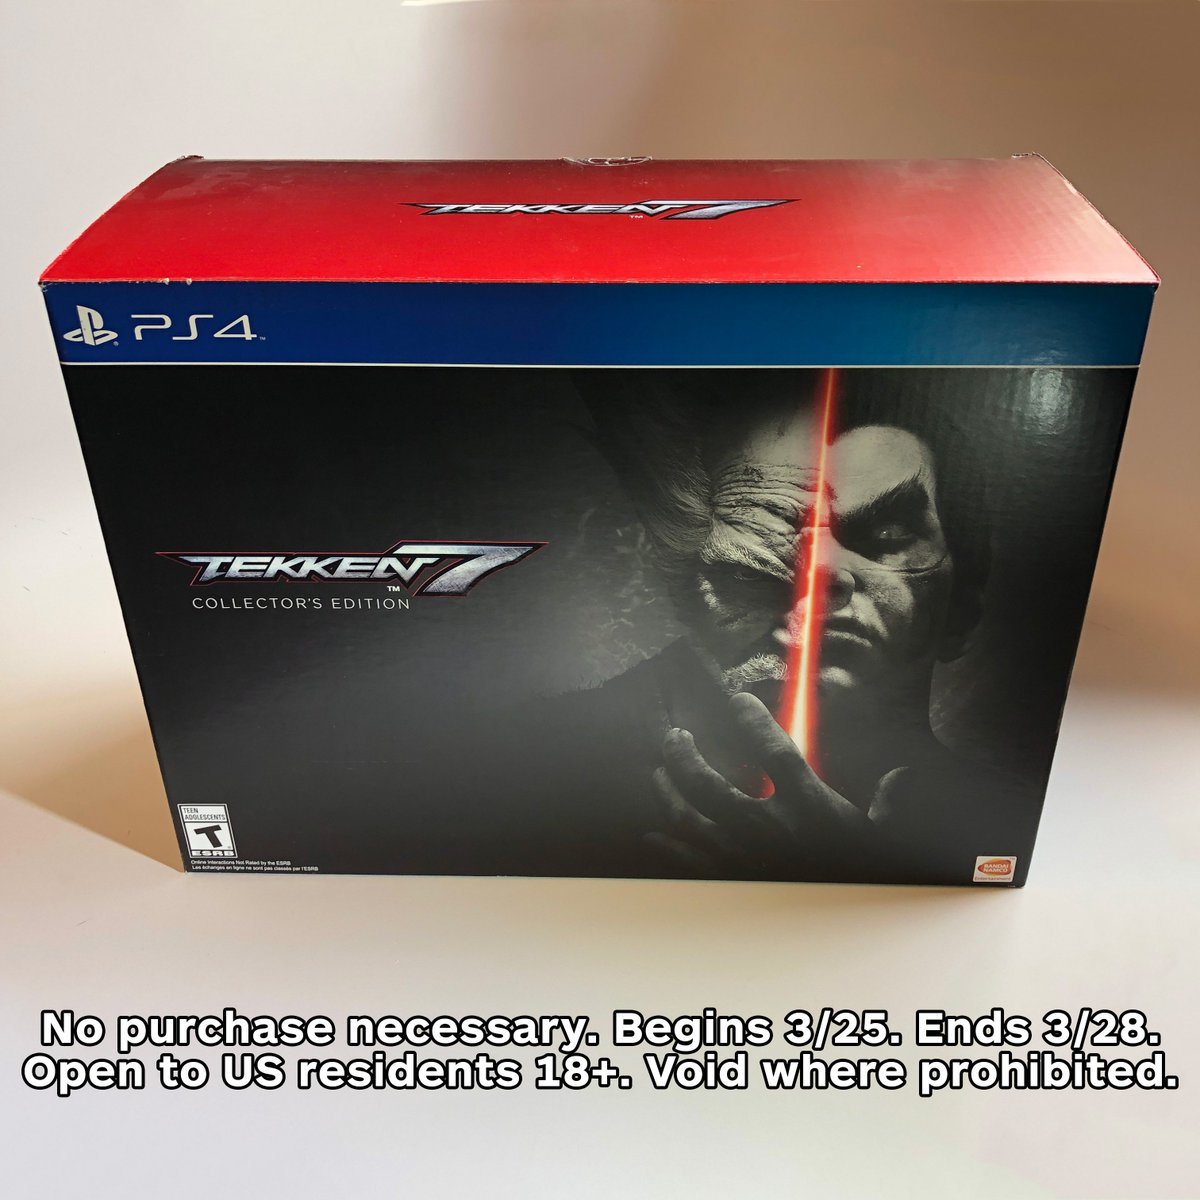 We're giving away one copy of the Tekken 7 Collector's Edition to a lucky fan!   RT with the hashtag #IGNSweepstakes and follow @IGN for your chance to win.   Rules: http://go.ign.com/0CYwclU